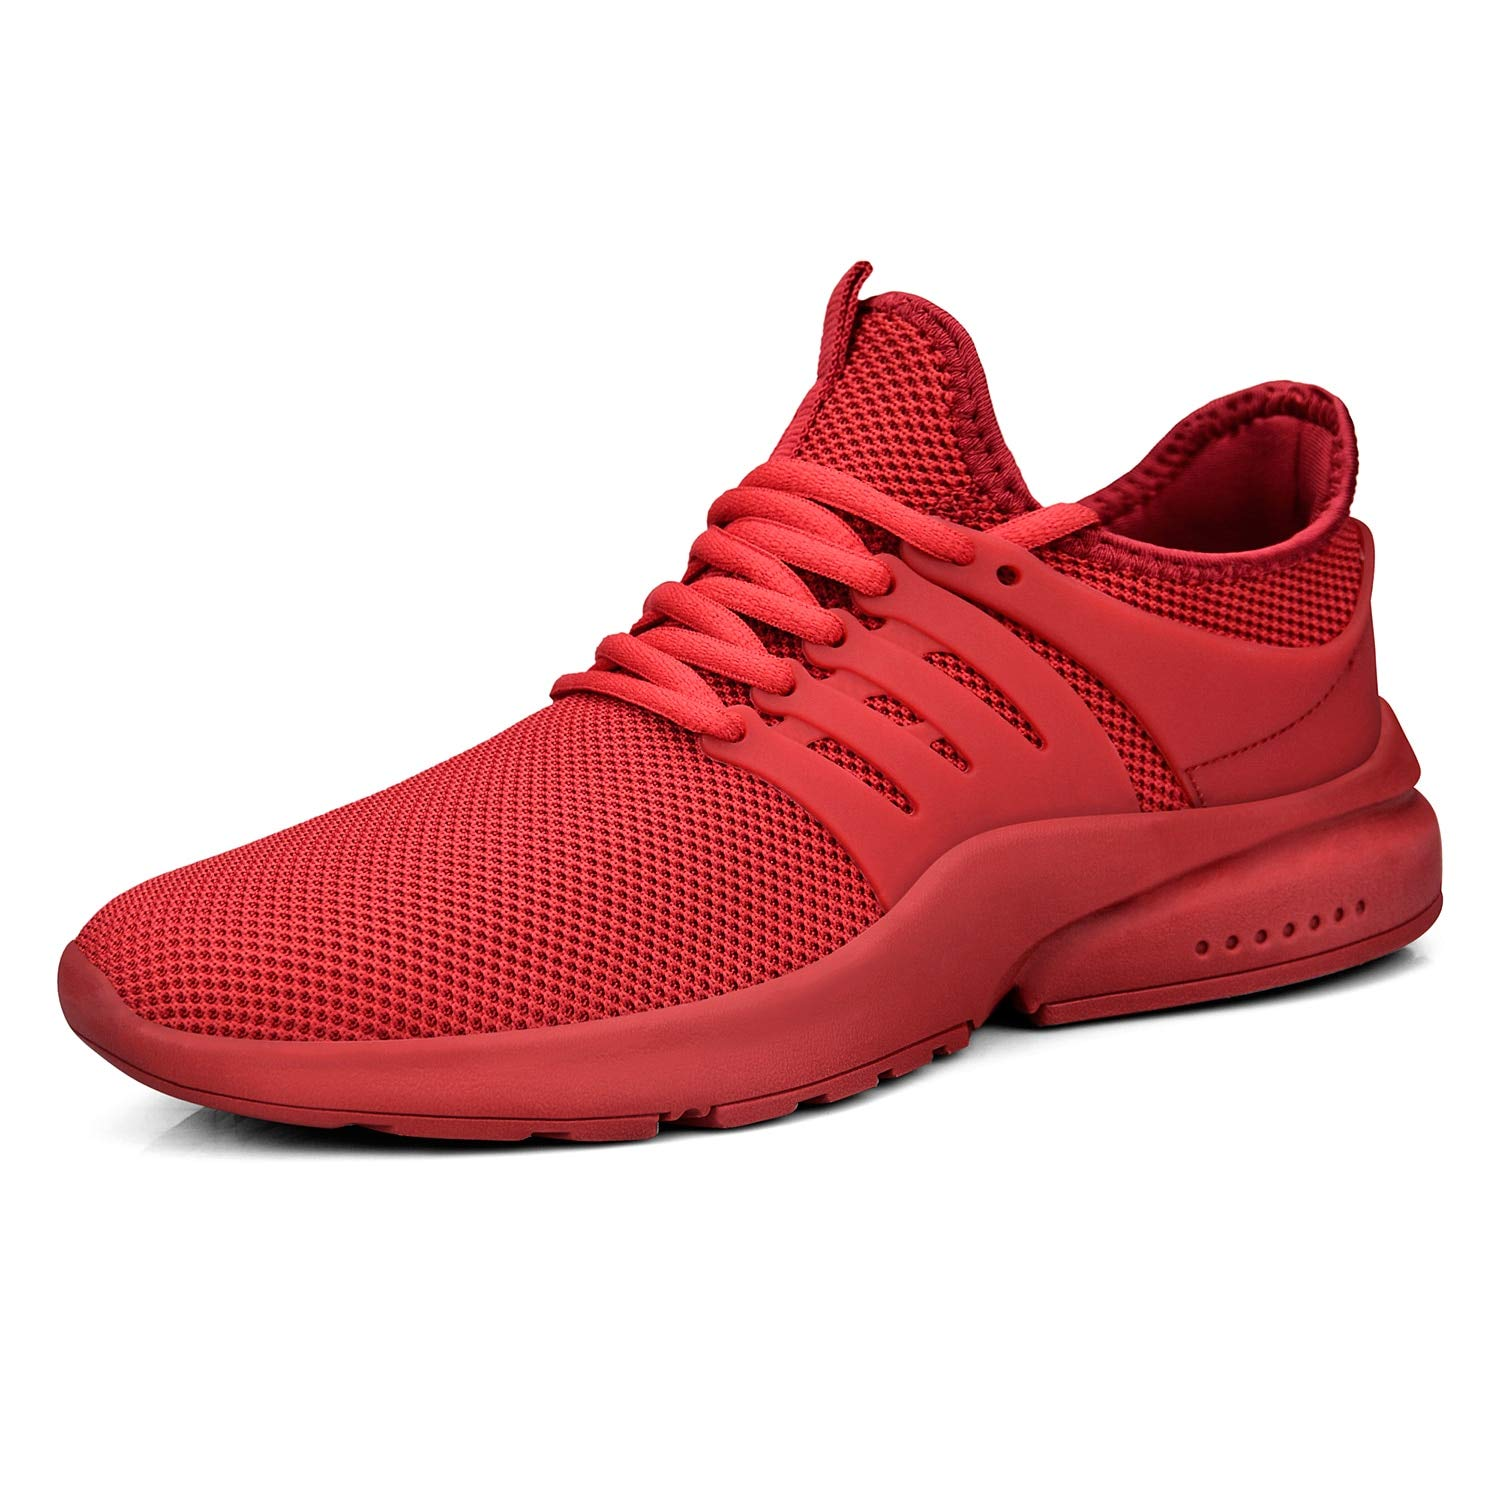 Feetmat Mens Walking Outdoor Lightweight Breathable Shoes Red Running Shoes for Boys Gym Athletics Tennis Sneakers Red 10M by Feetmat